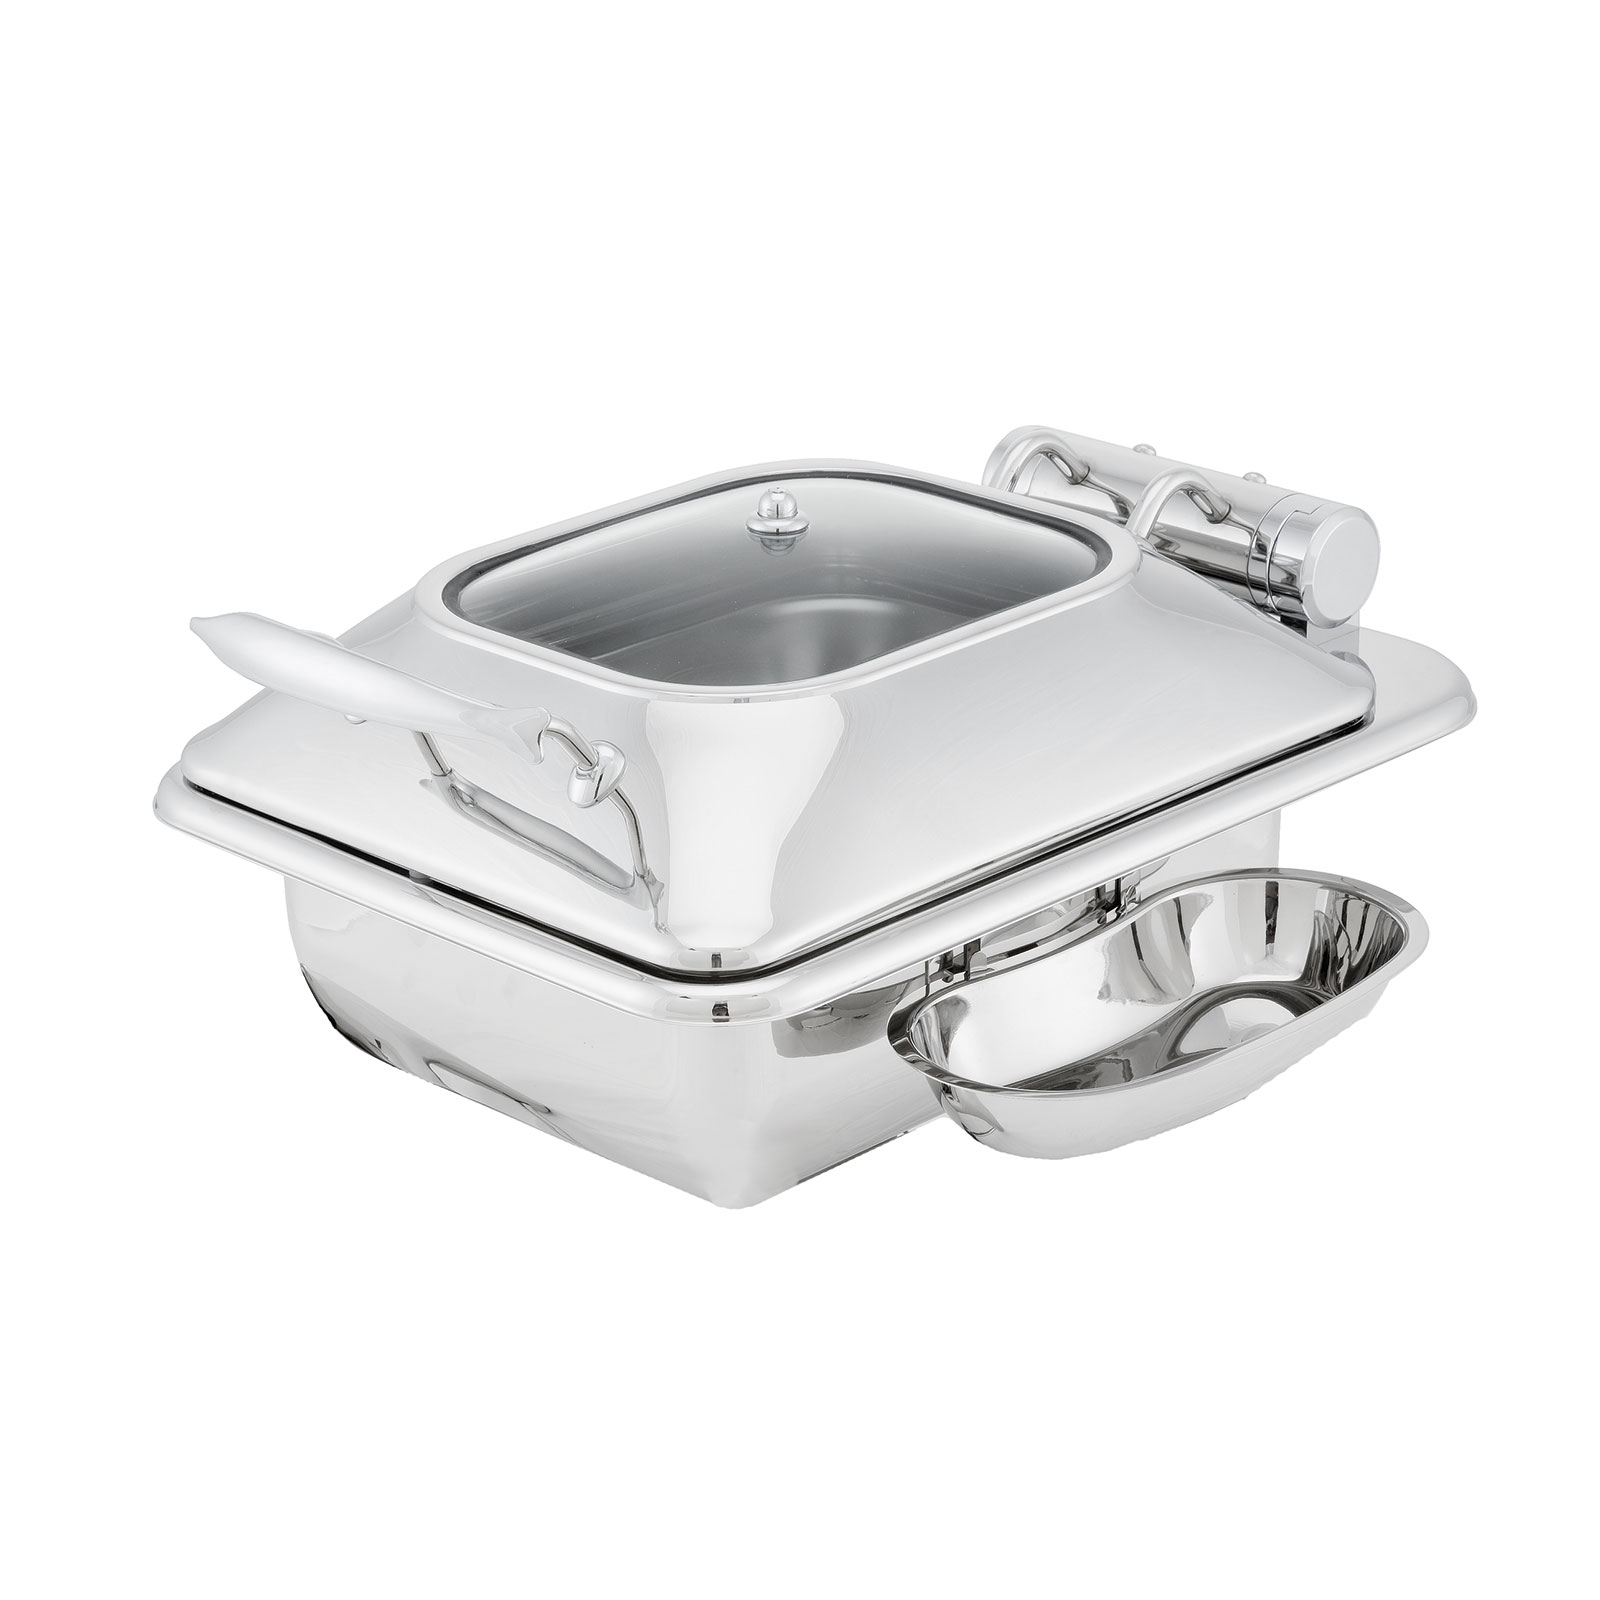 Walco Stainless WI35UGT chafing dish